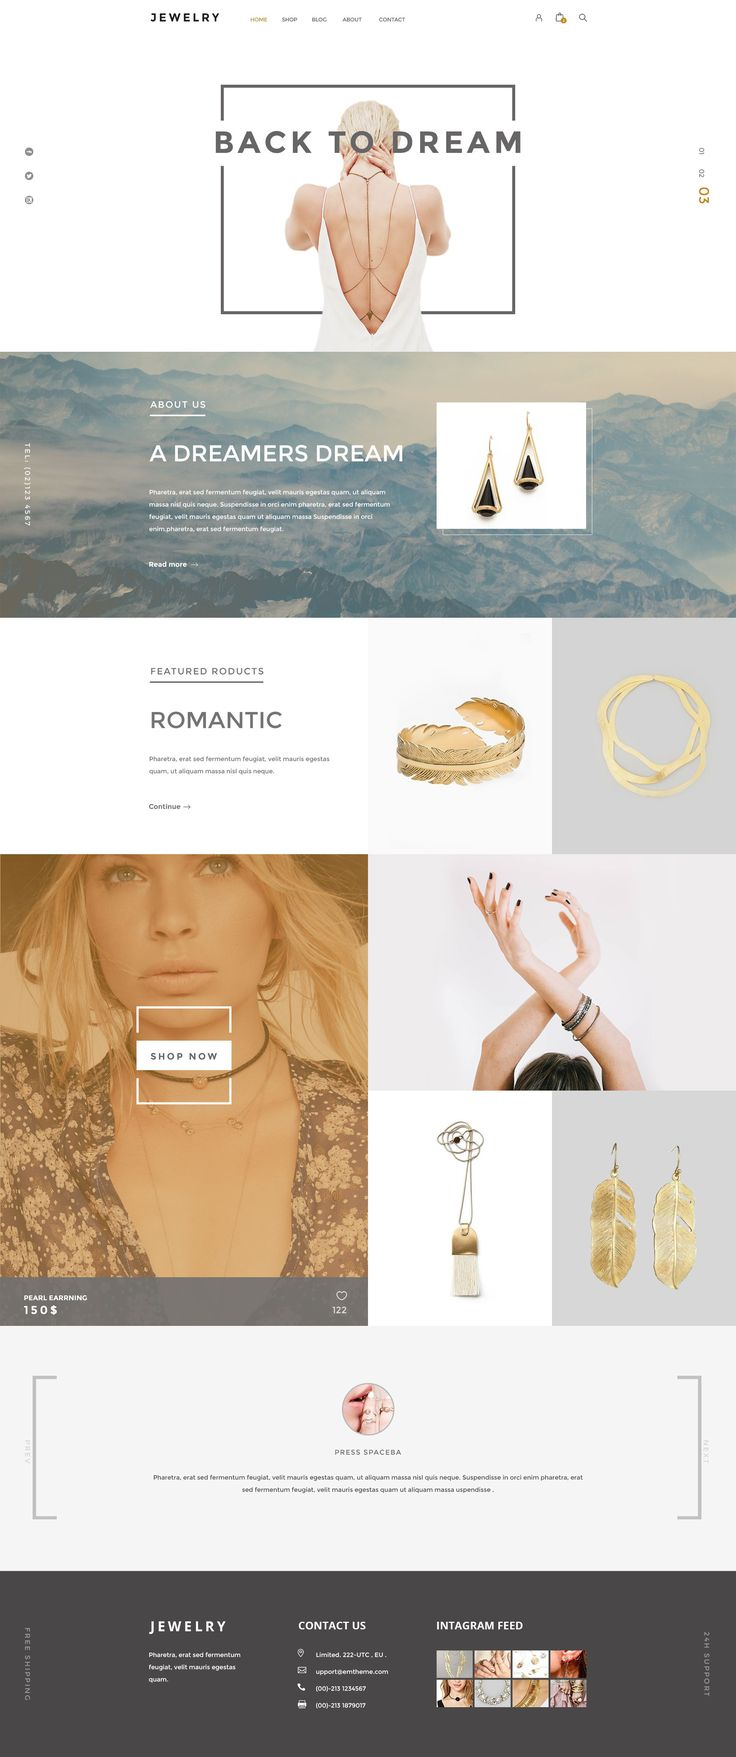 Jewelry PSD Template is design which is ideal as it is for Ecommerce Site. You can convert it to Site Template,Shopify, Magento, WordPress, Joomla or other CMS. #psdtemplate Download Now➝ http://themeforest.net/item/-jewelry-ecommerce-psd-template/15356089?ref=Datasata